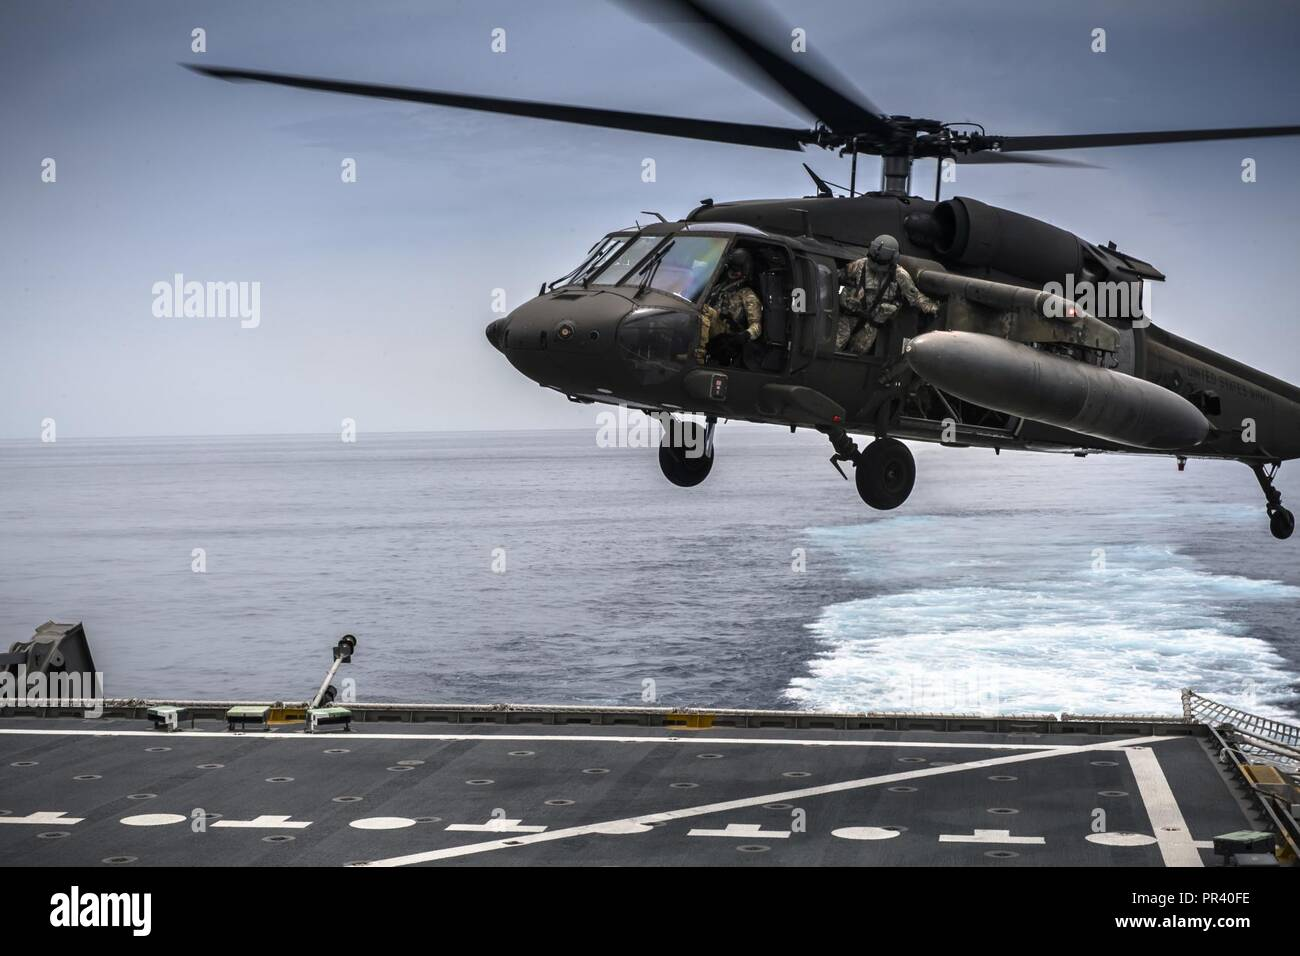 U.S. Army UH-60 Blackhawk from 1-228th Aviation Regiment Charlie Company conduct deck landing qualification aboard the USNS Spearhead off the coast of Honduras in the Caribbean Sea, July 27, 2017. The 1-228th C-Company deck landing qualification consisted of classroom instruction and 5 landings with an Instructor Pilot. Once qualified each Pilot will need to maintain their currency on a scheduled timeline. Stock Photo